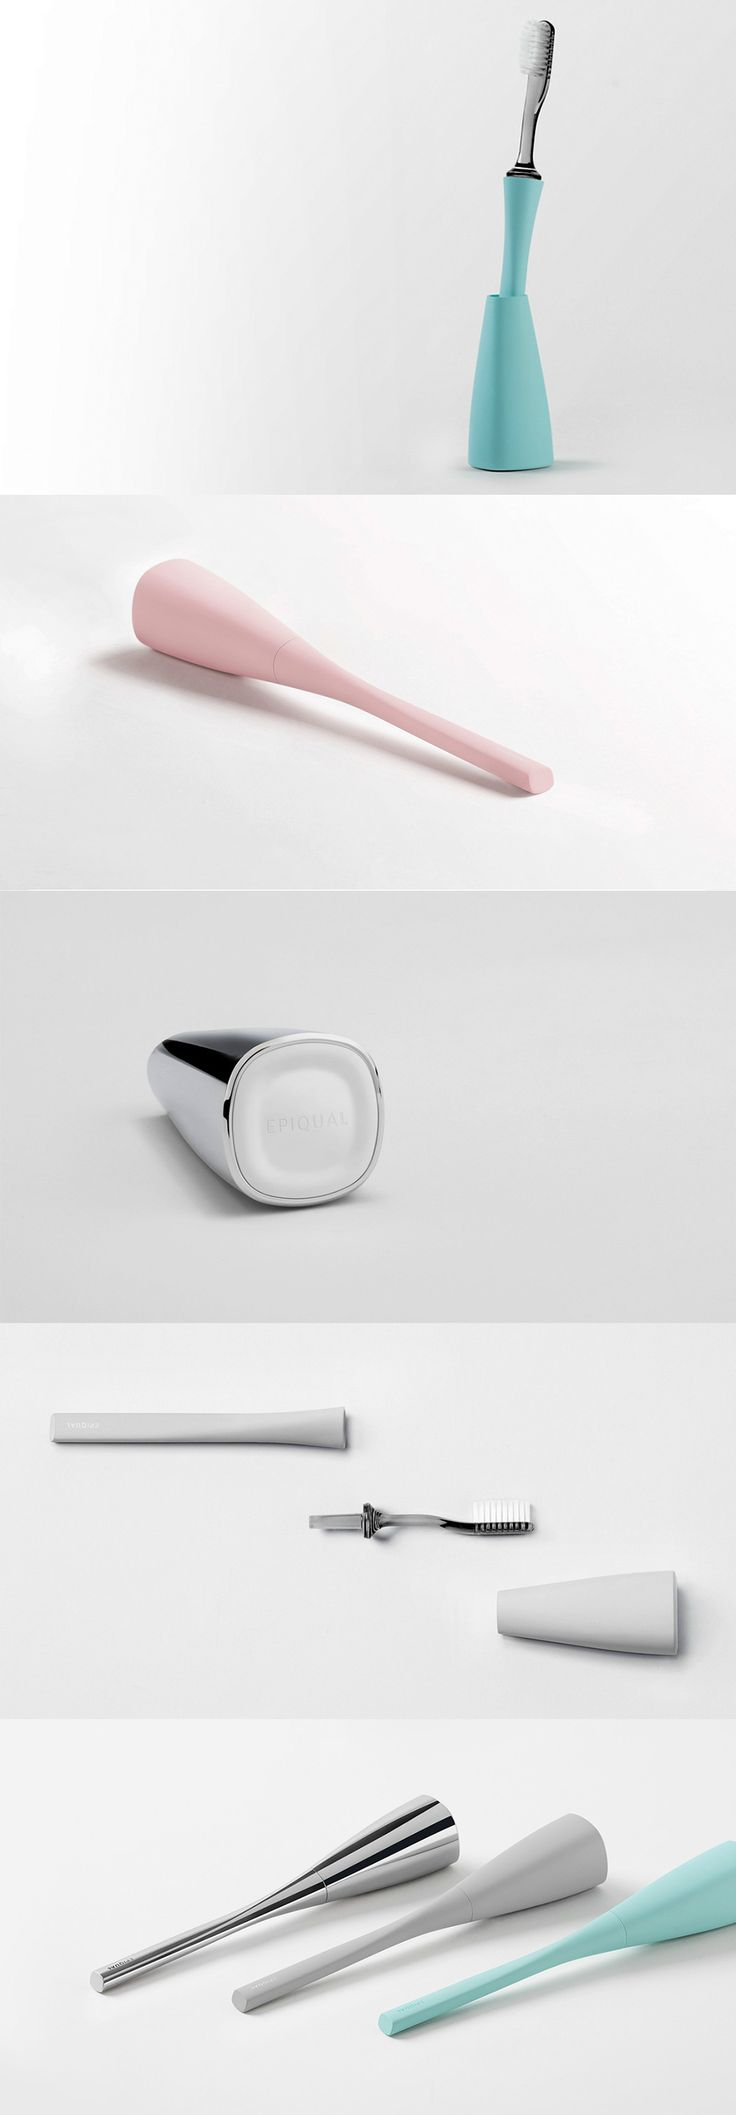 A TOOTHBRUSH FIT FOR A MUSEUM | READ FULL STORY at YANKO DESIGN